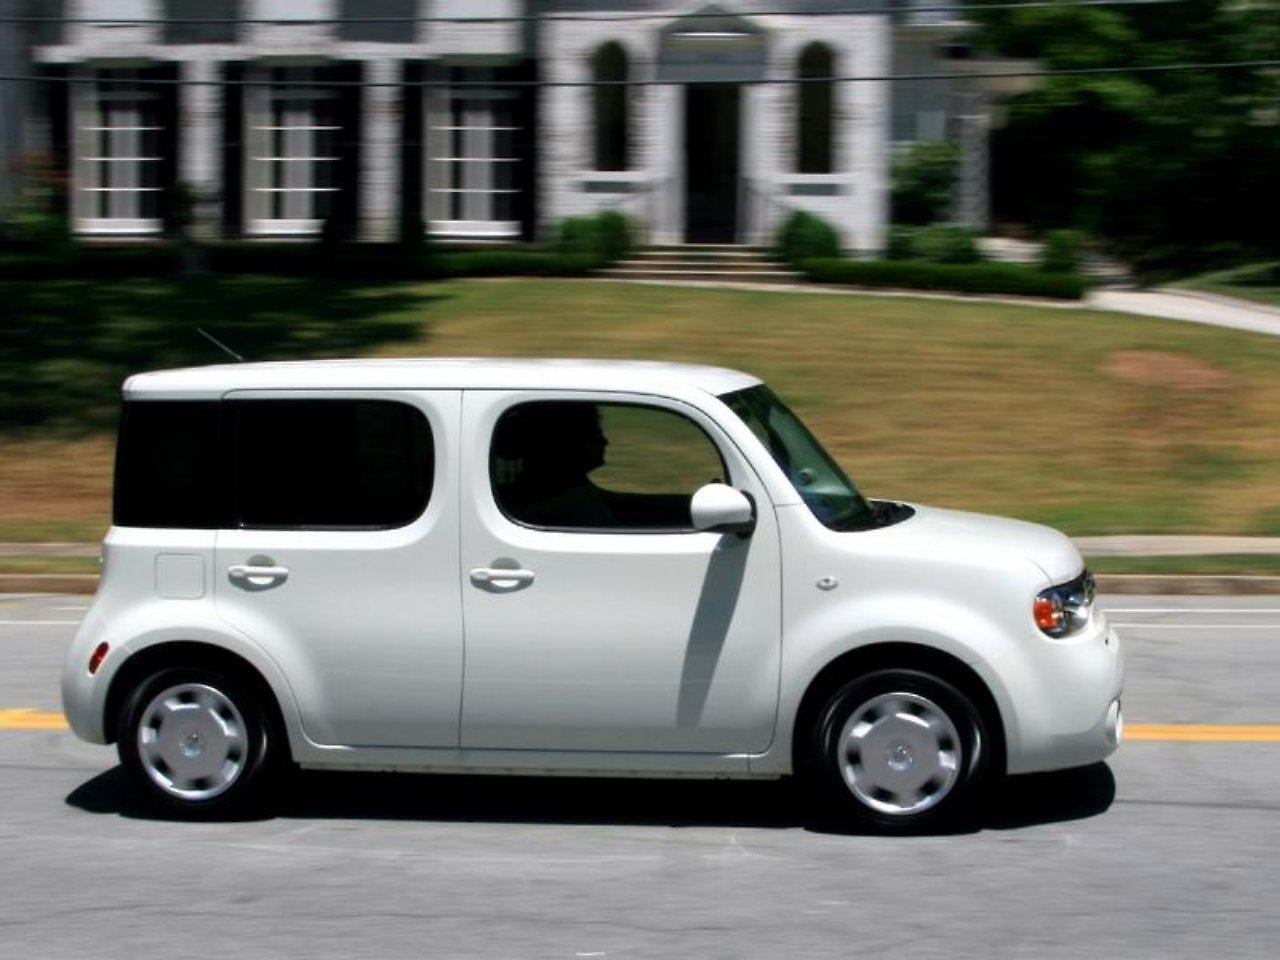 nissan cube kommt der w rfel ist gefallen n. Black Bedroom Furniture Sets. Home Design Ideas